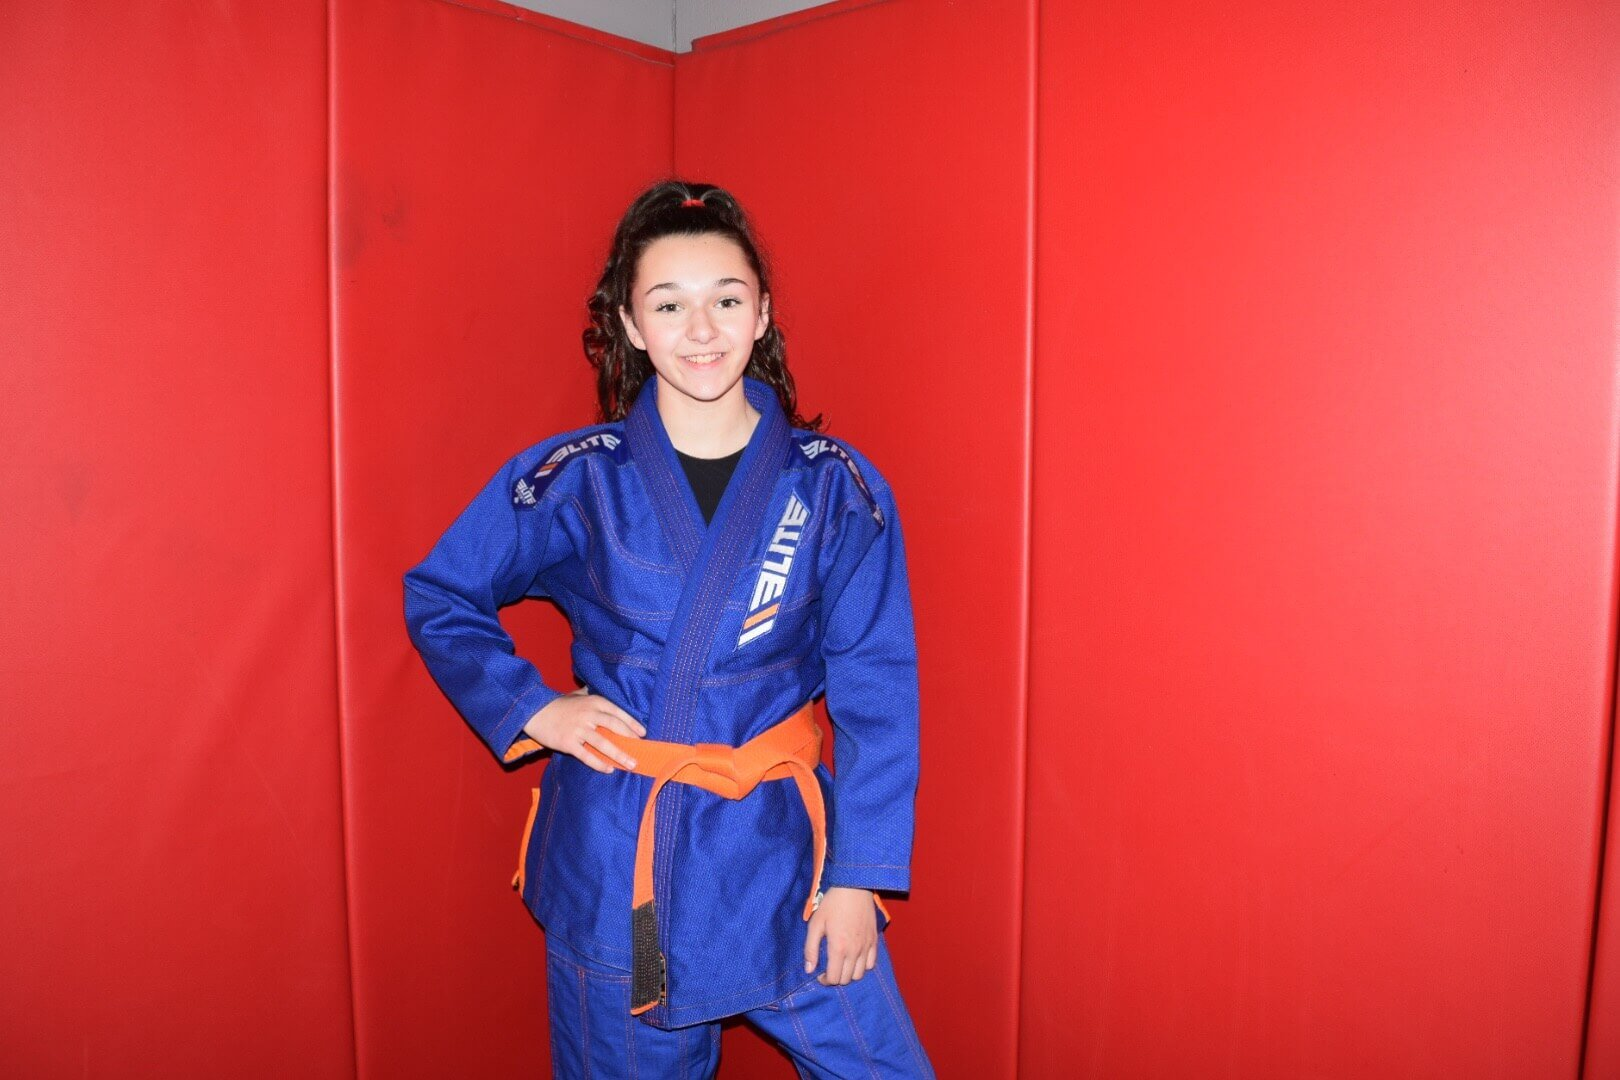 Elite Sports Team Elite Bjj Fighter Claire MacDougall Image7